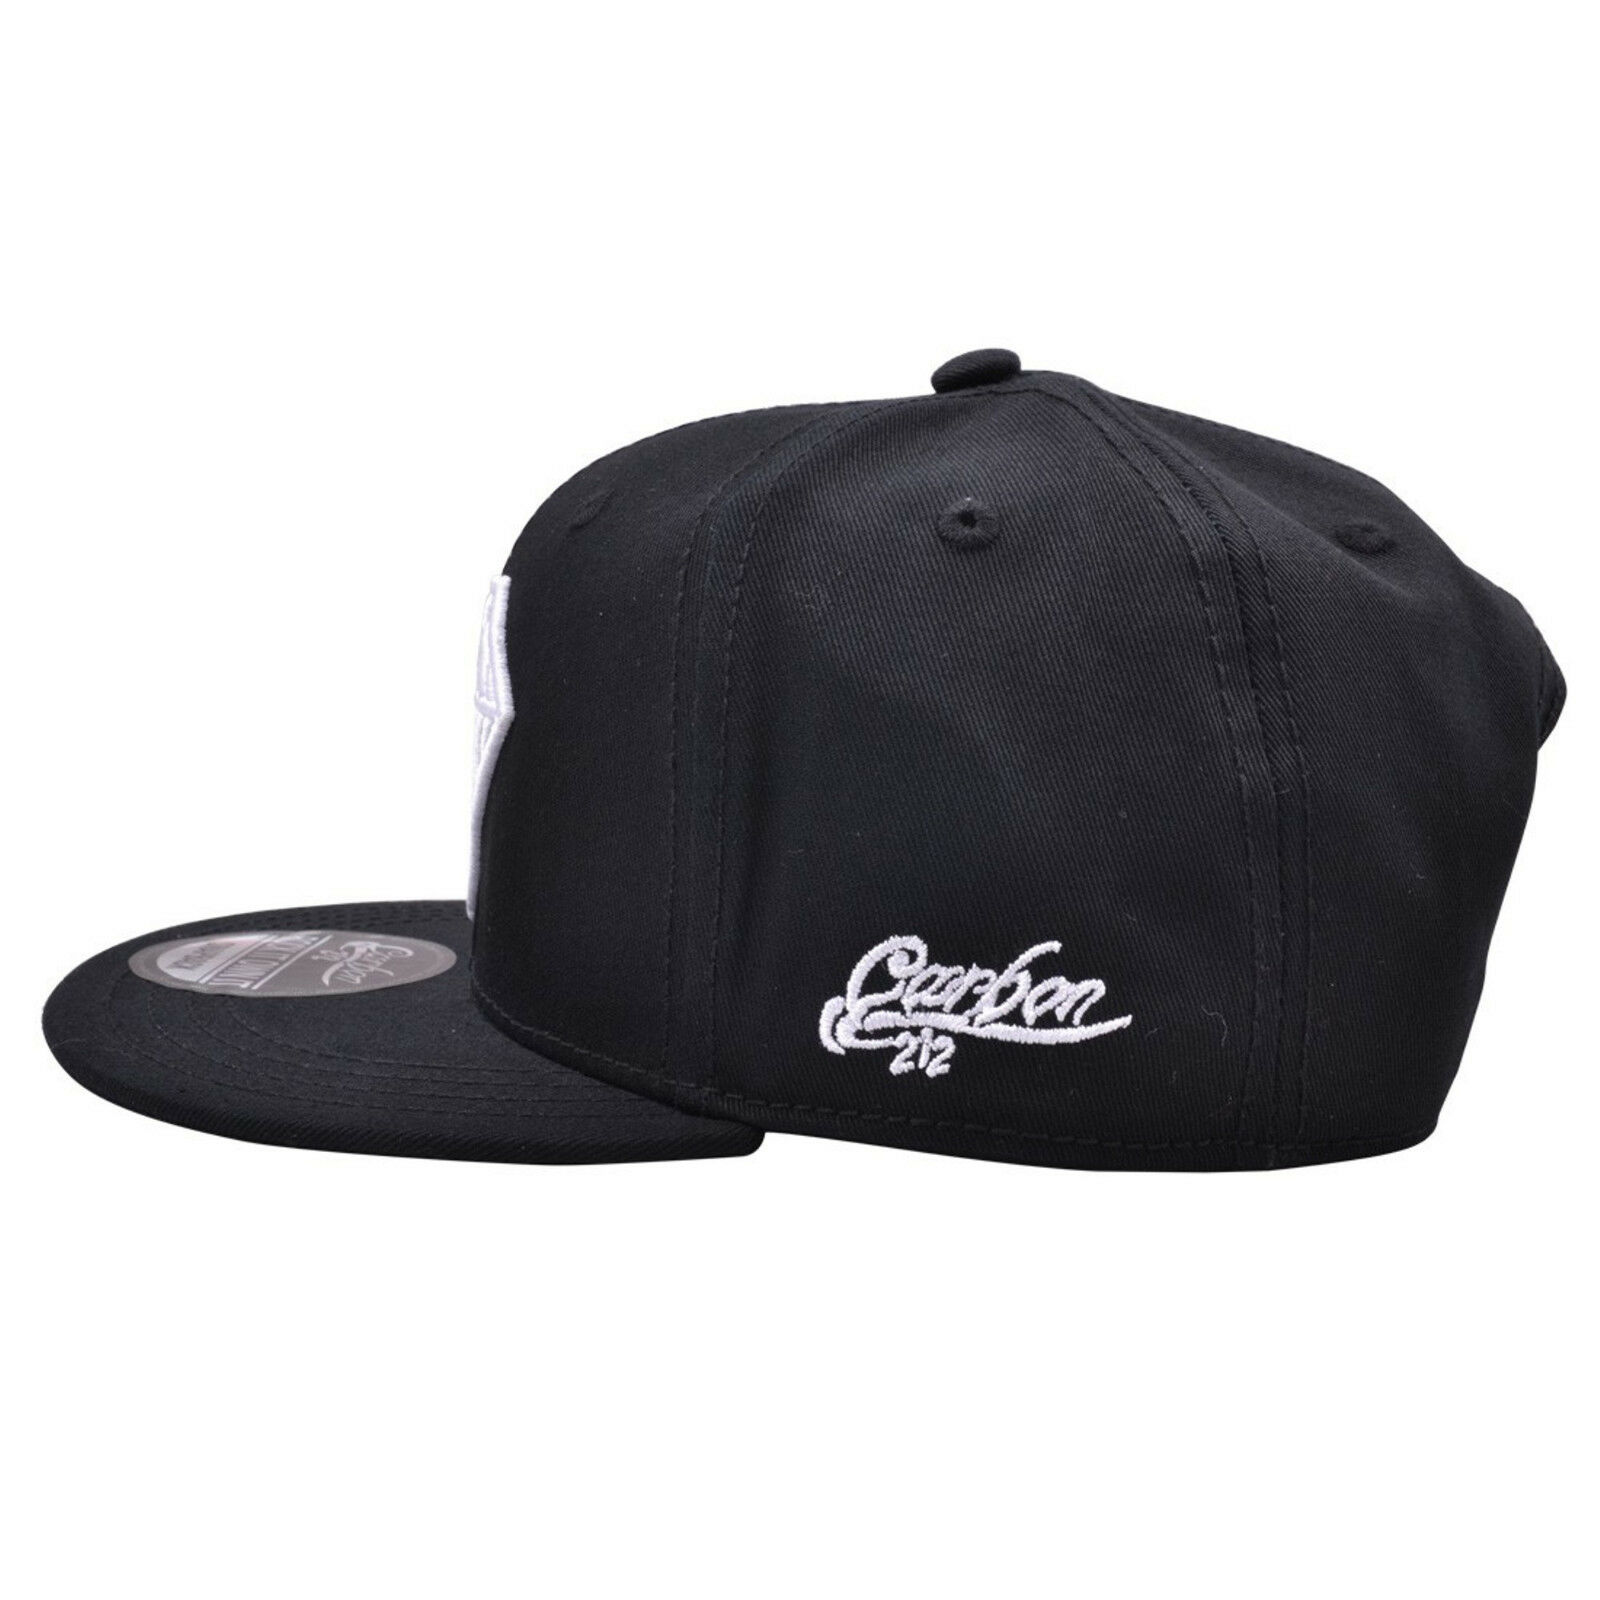 Diamond Design Grey Hat With Black Flat Peak Snapback Baseball Cap